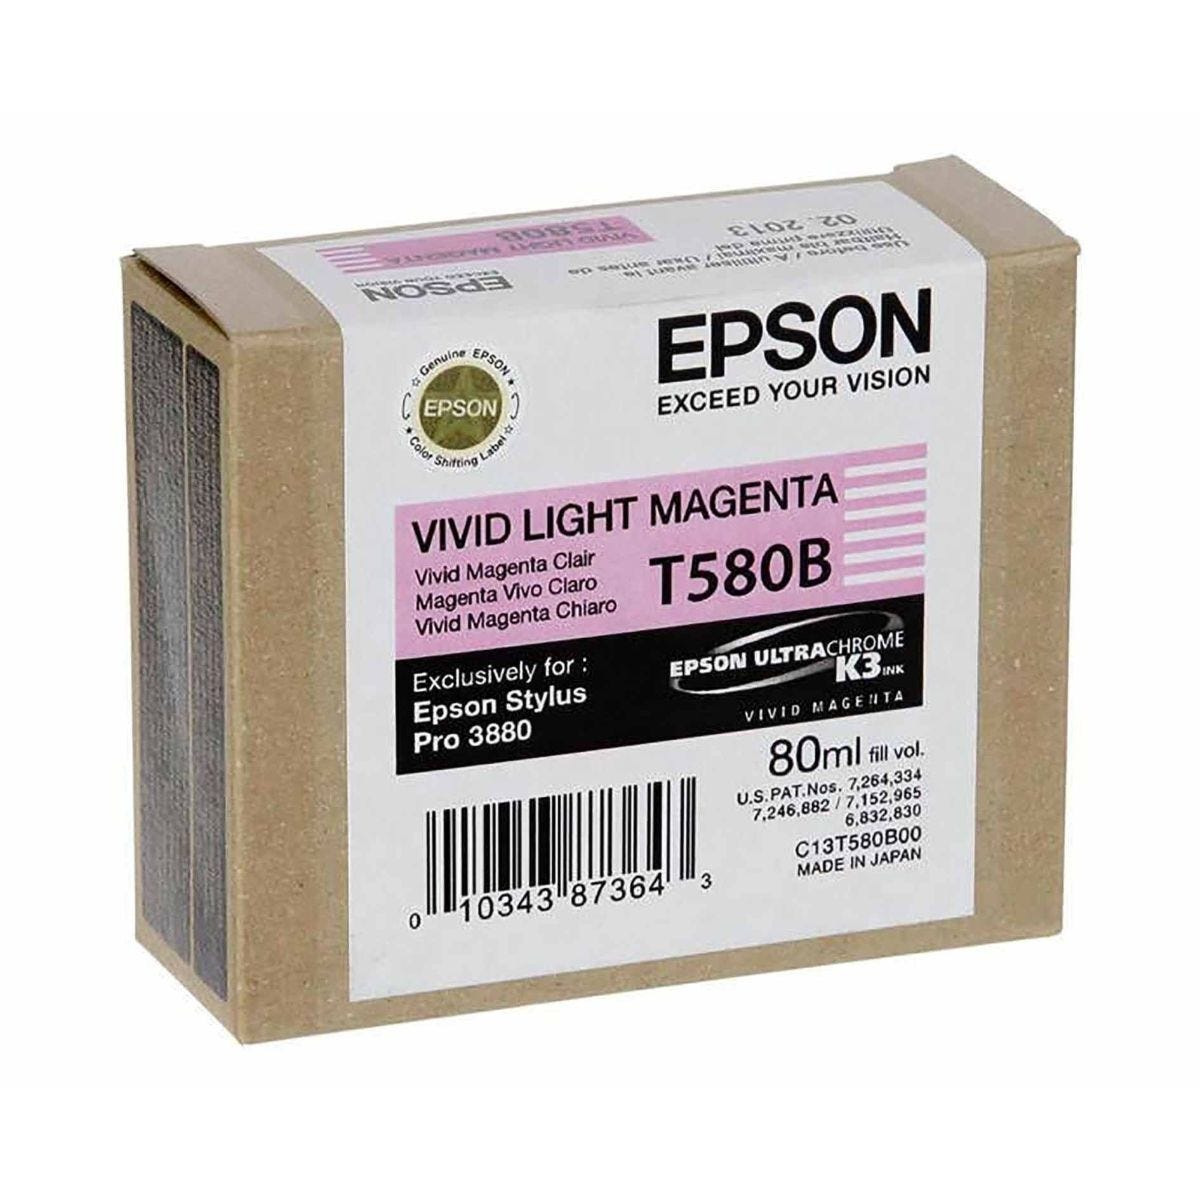 Epson Vivid Ink Light Magenta